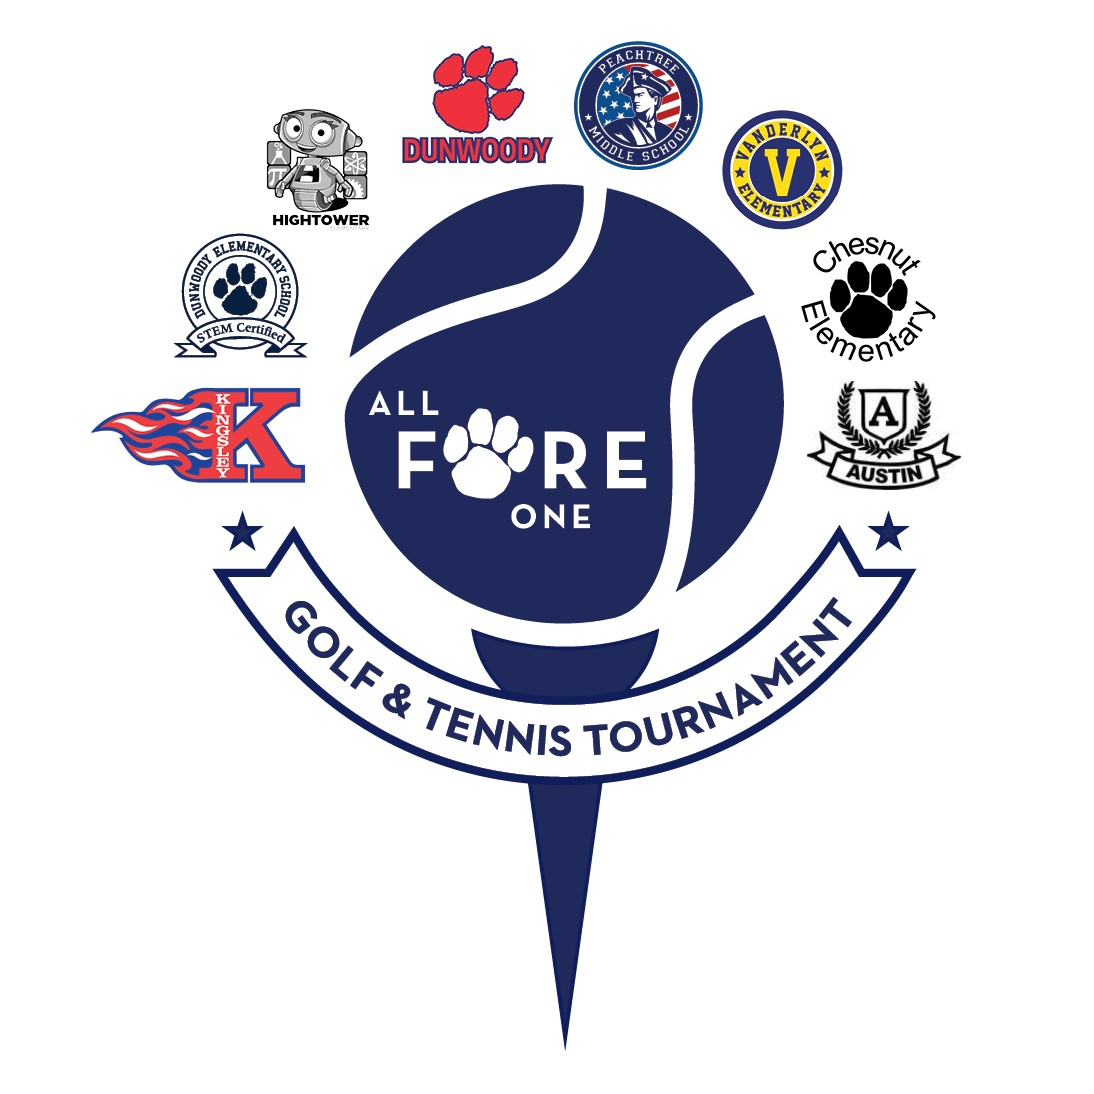 All Fore One Golf & Tennis Tournament - Default Image of Court Sponsor